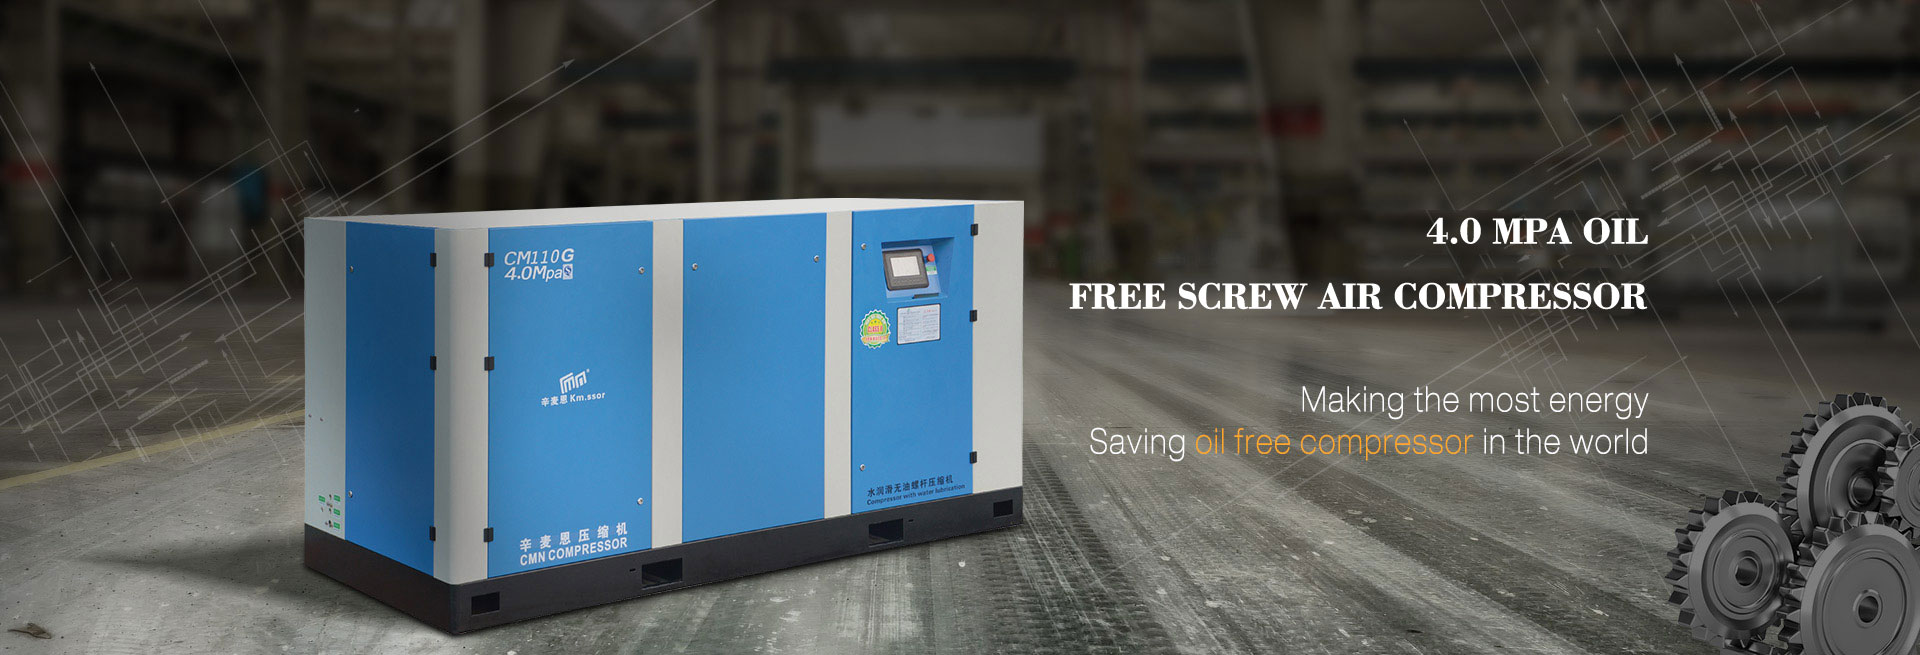 4.0 Mpa oil  free screw air compressor.